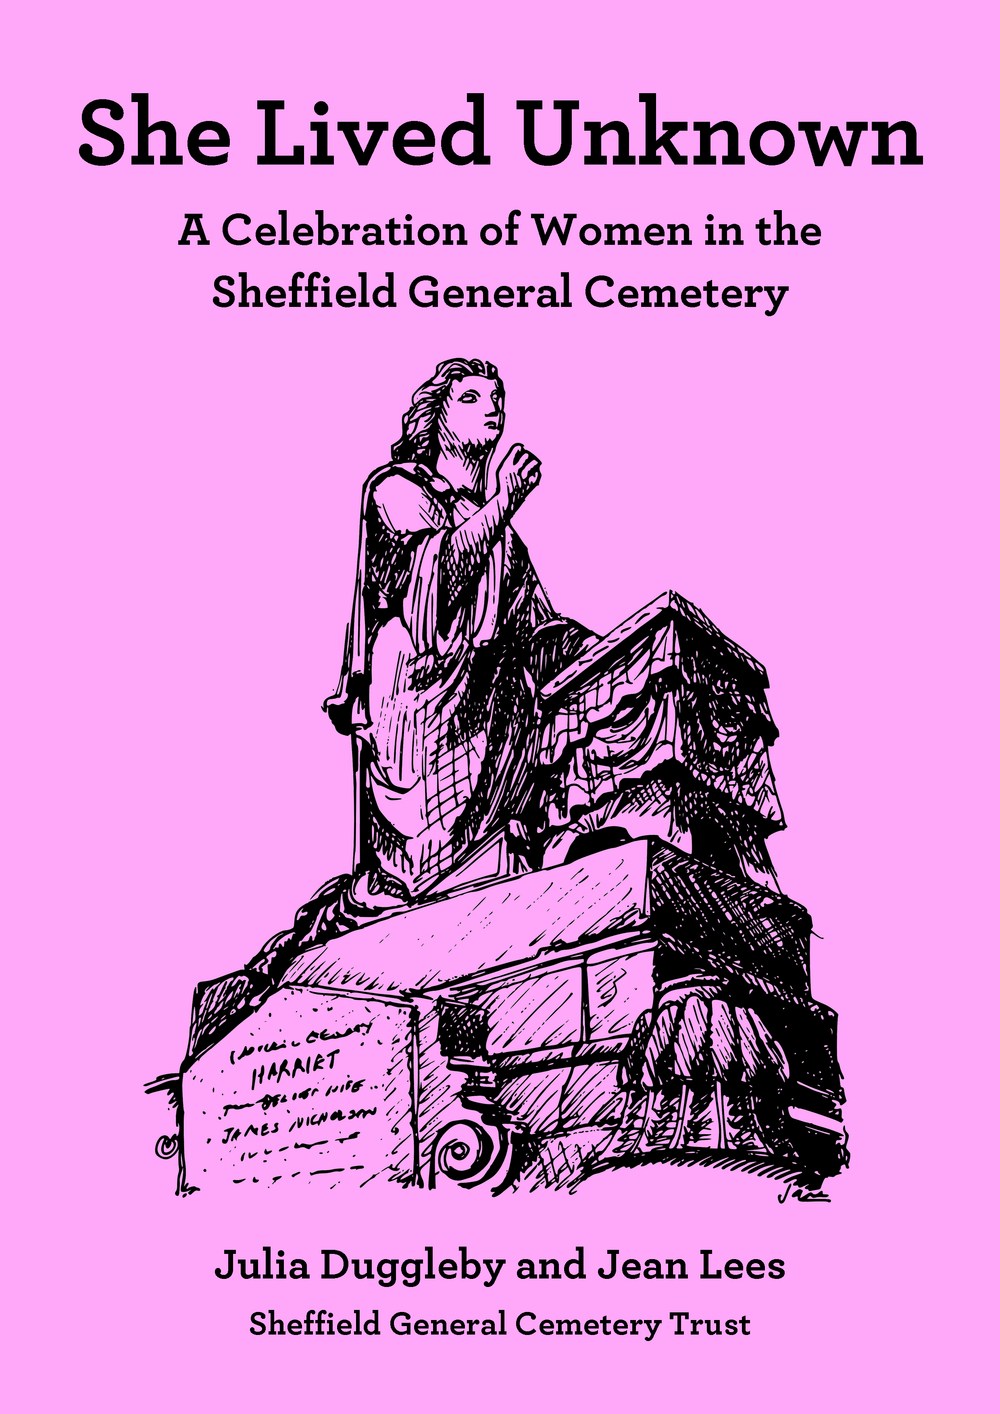 She Lived Unknown – Julia Duggleby and Jean Lees   This is a celebration of the lives of women buried in the General Cemetery. The book focuses on poverty, the history of nursing and the way women are symbolised in the Cemetery. Women of action, and scandal, are featured and a map included to locate the graves.   Price £2.95